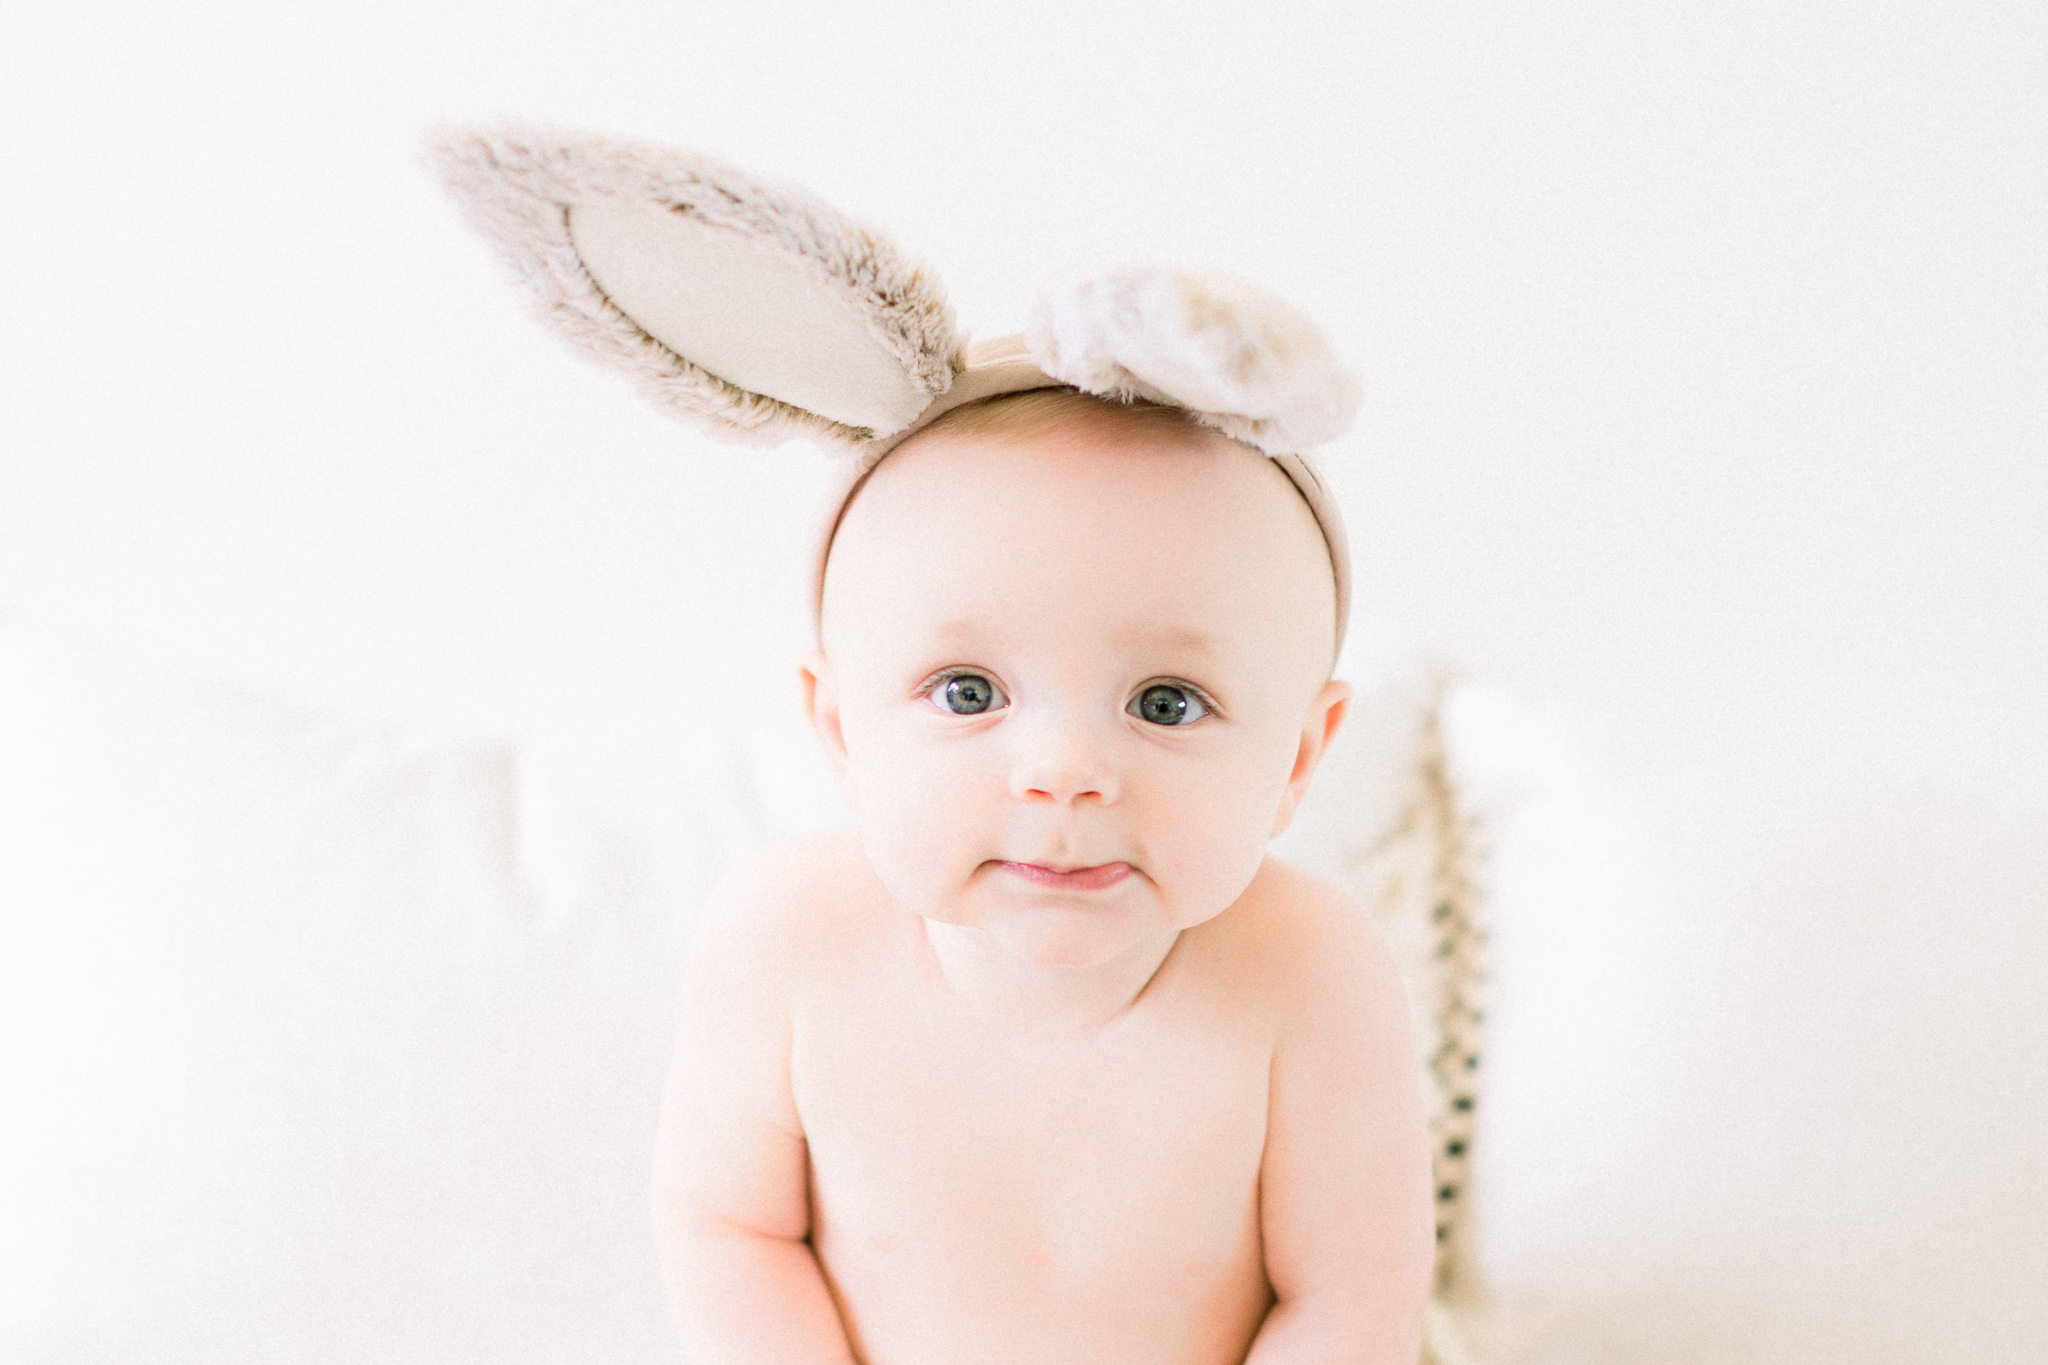 Henry + Owen | Bubbly Bunny 9 Month Baby Milestone Photography Session | Noblesville, Indiana